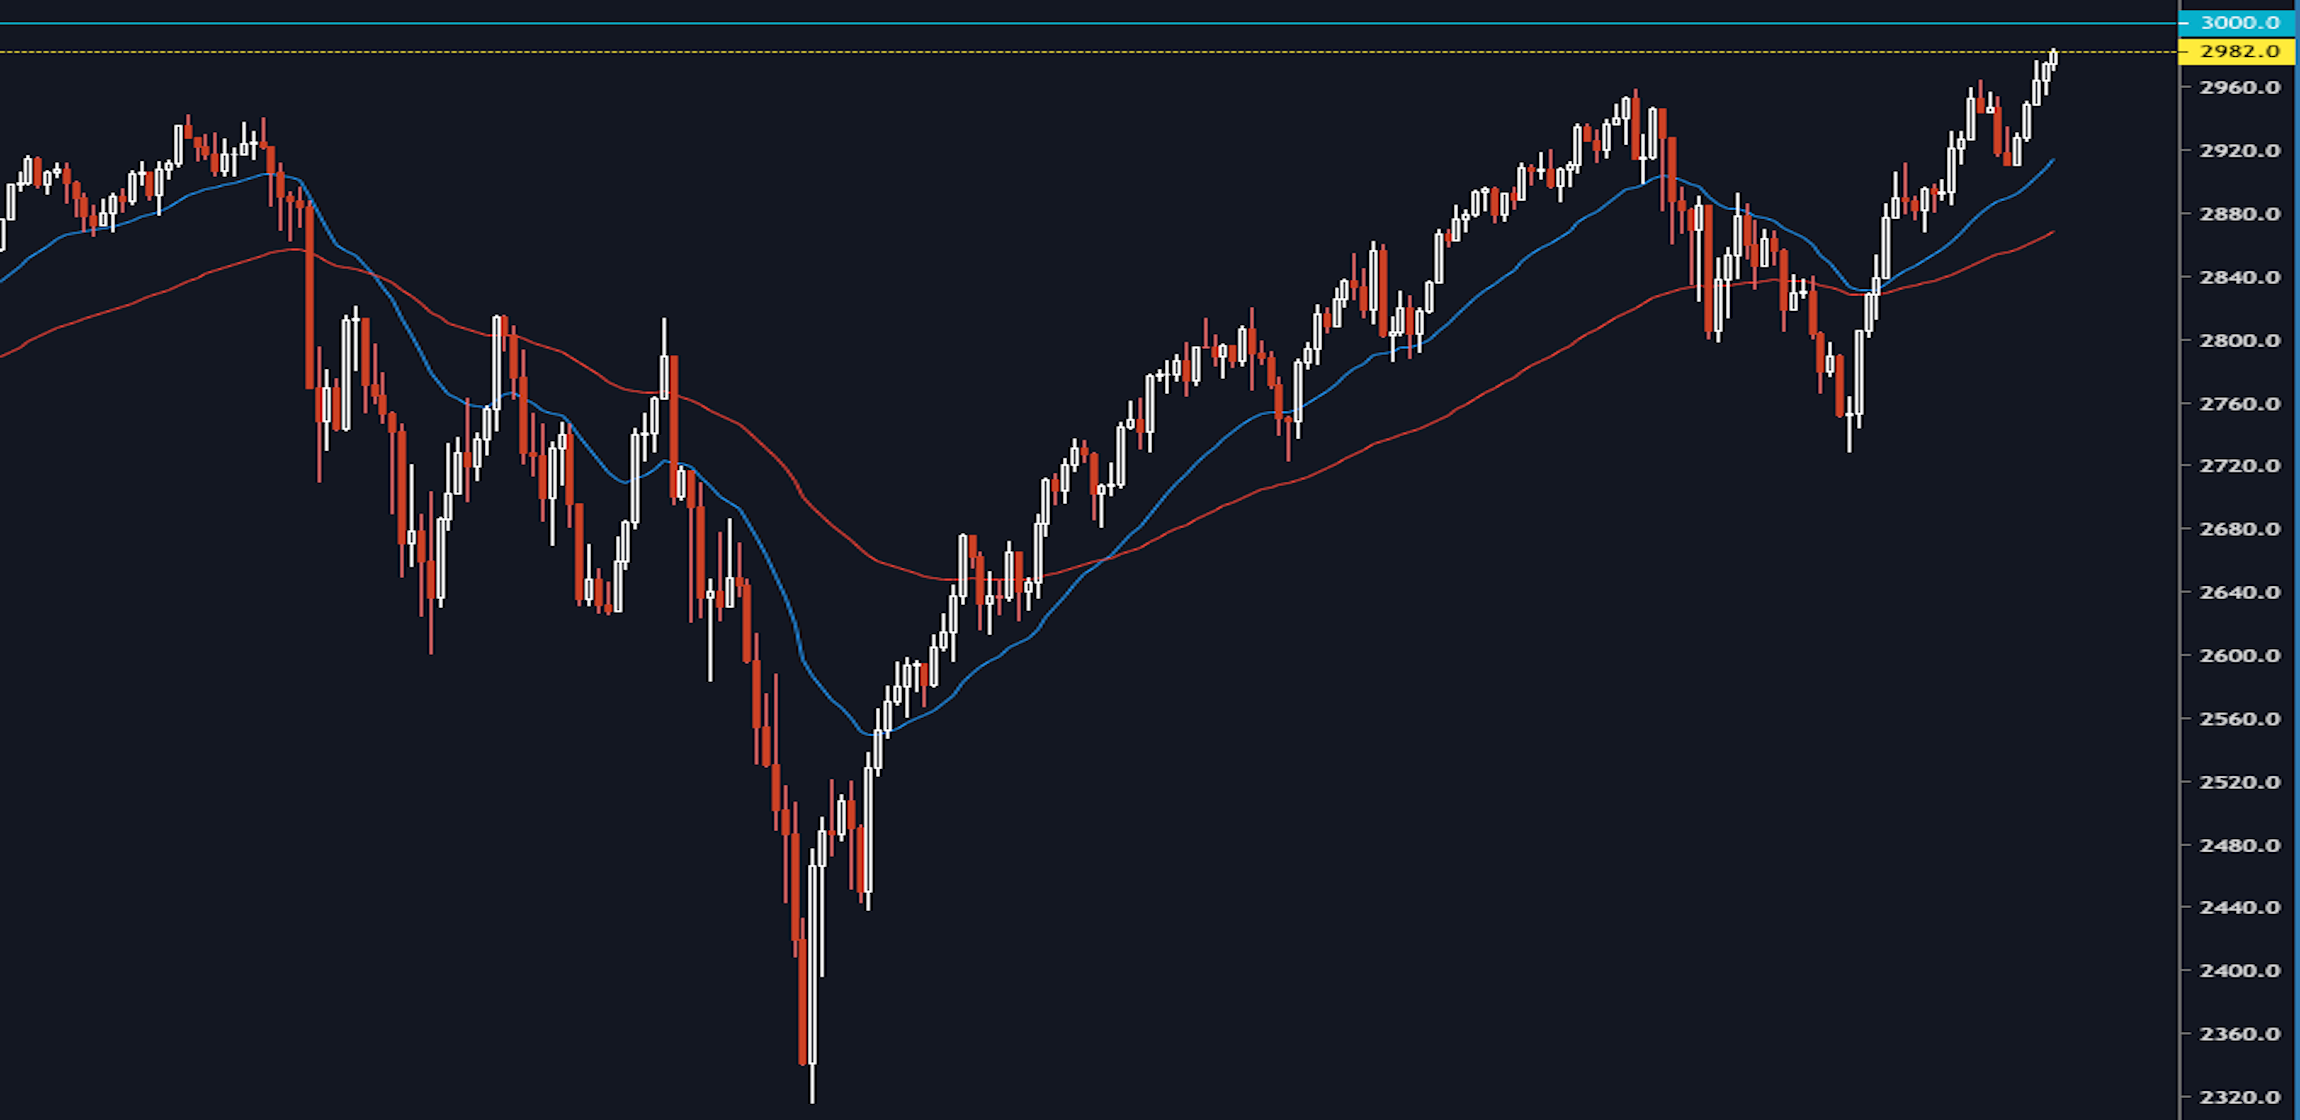 The March Towards 3000 For The S&P